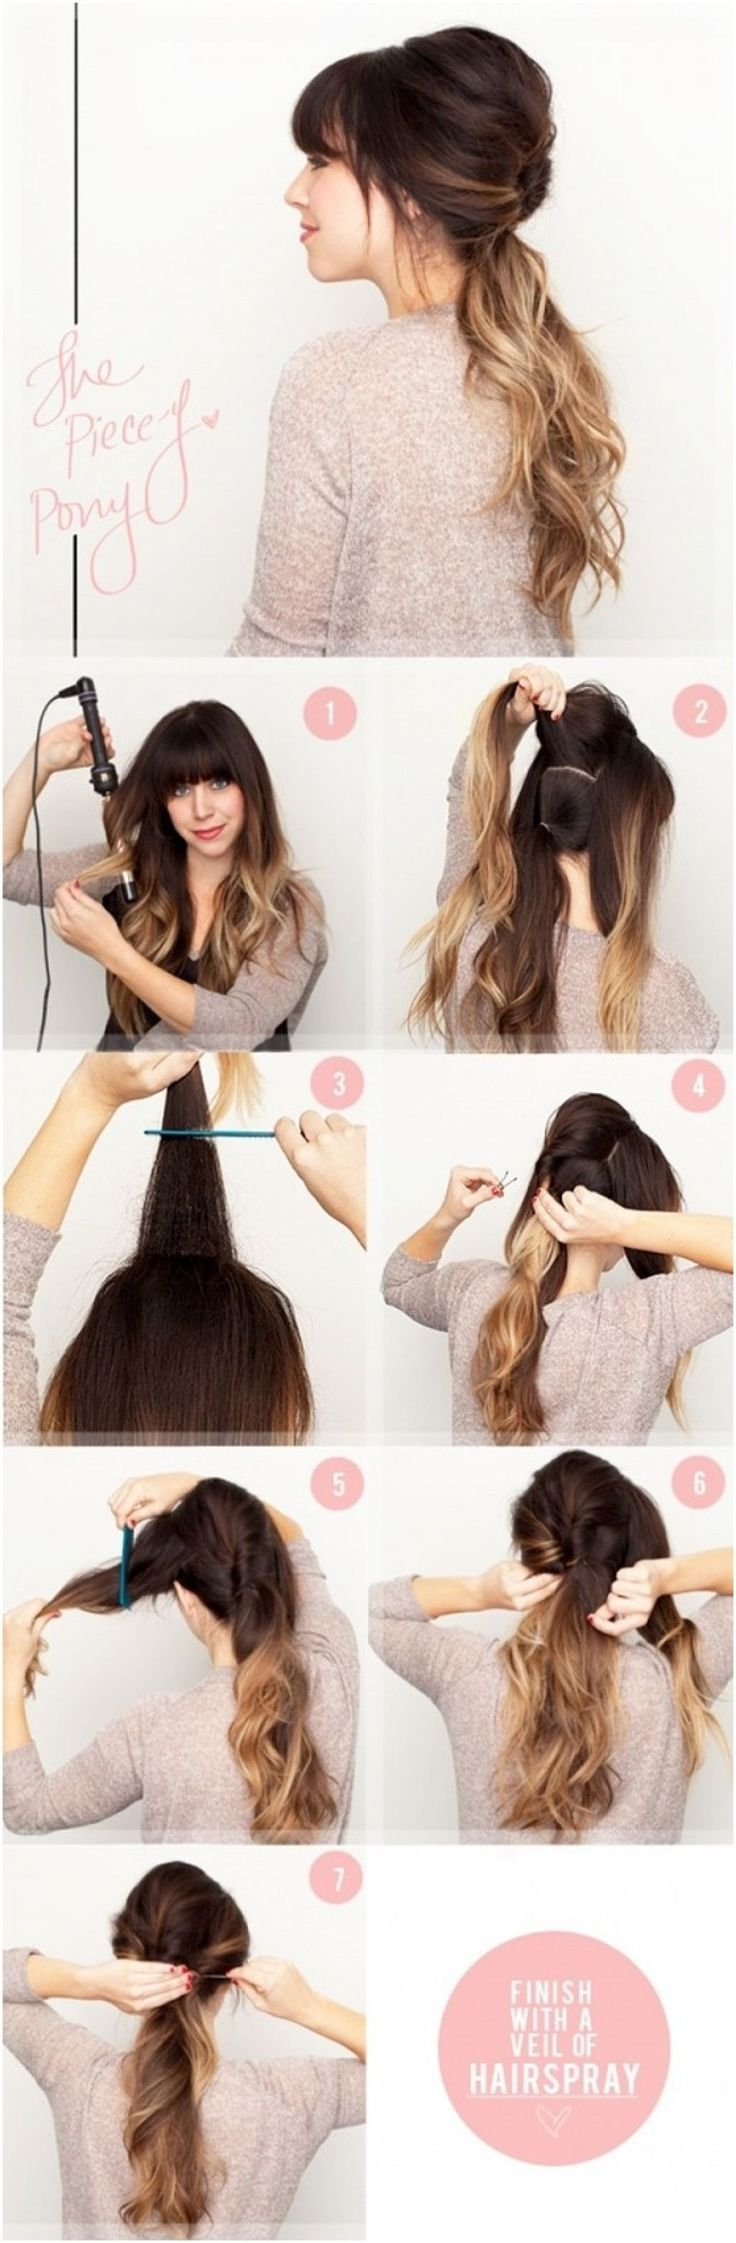 15 best hairstyles – do it yourself images on pinterest